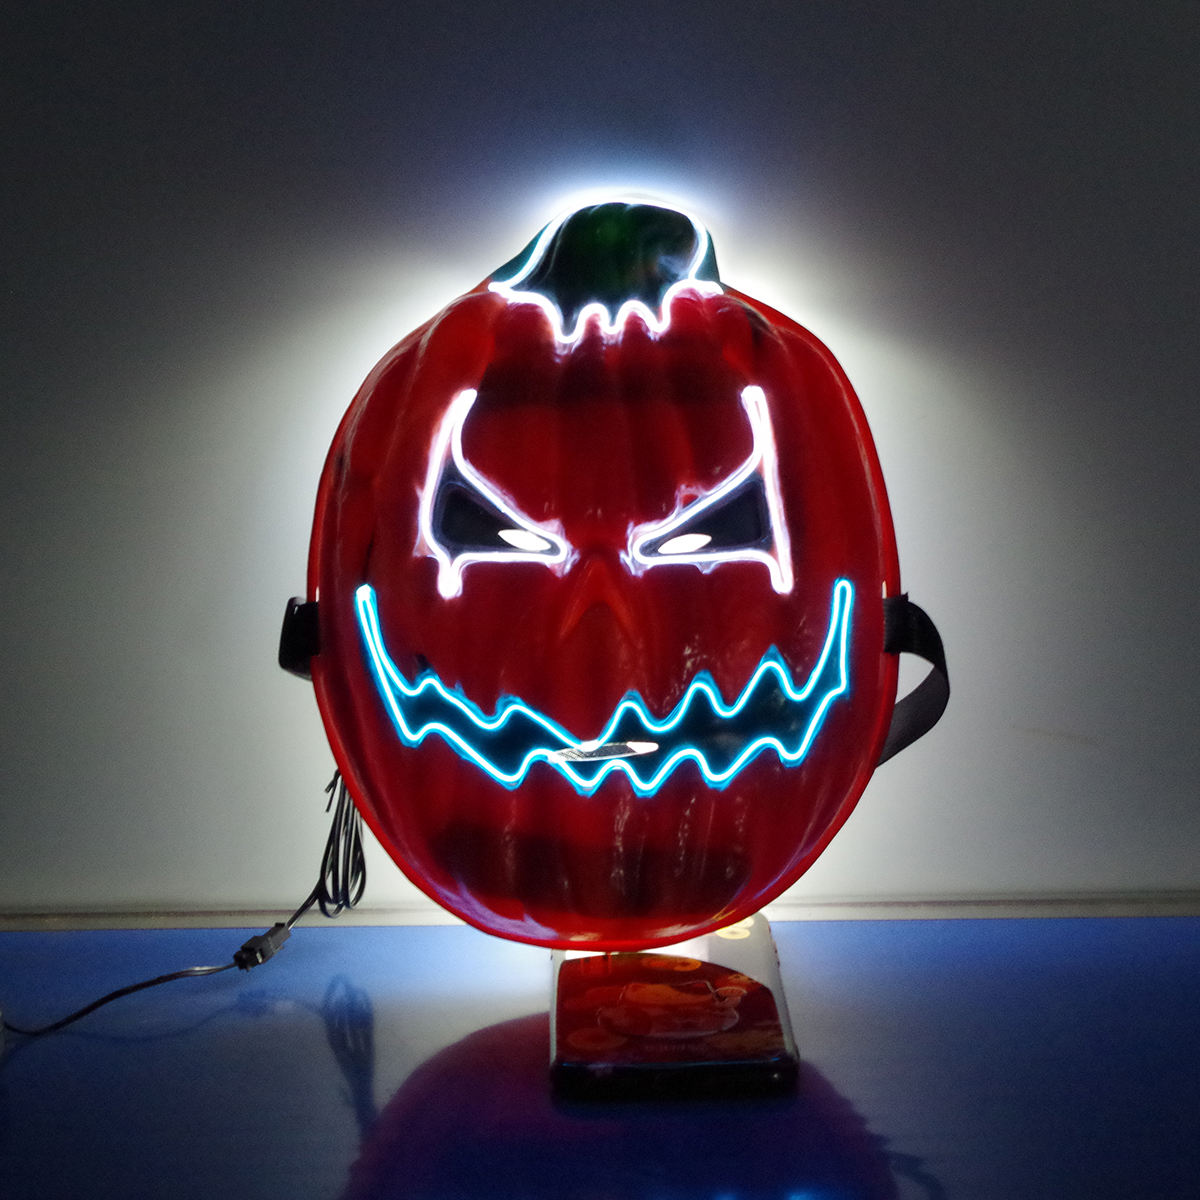 2019 Halloween Mask LED Mask Light Up Party Masks Neon Mask Cosplay Mascara Horror Glow Glow-in-Dark Dark Scary Pumpkin Mask